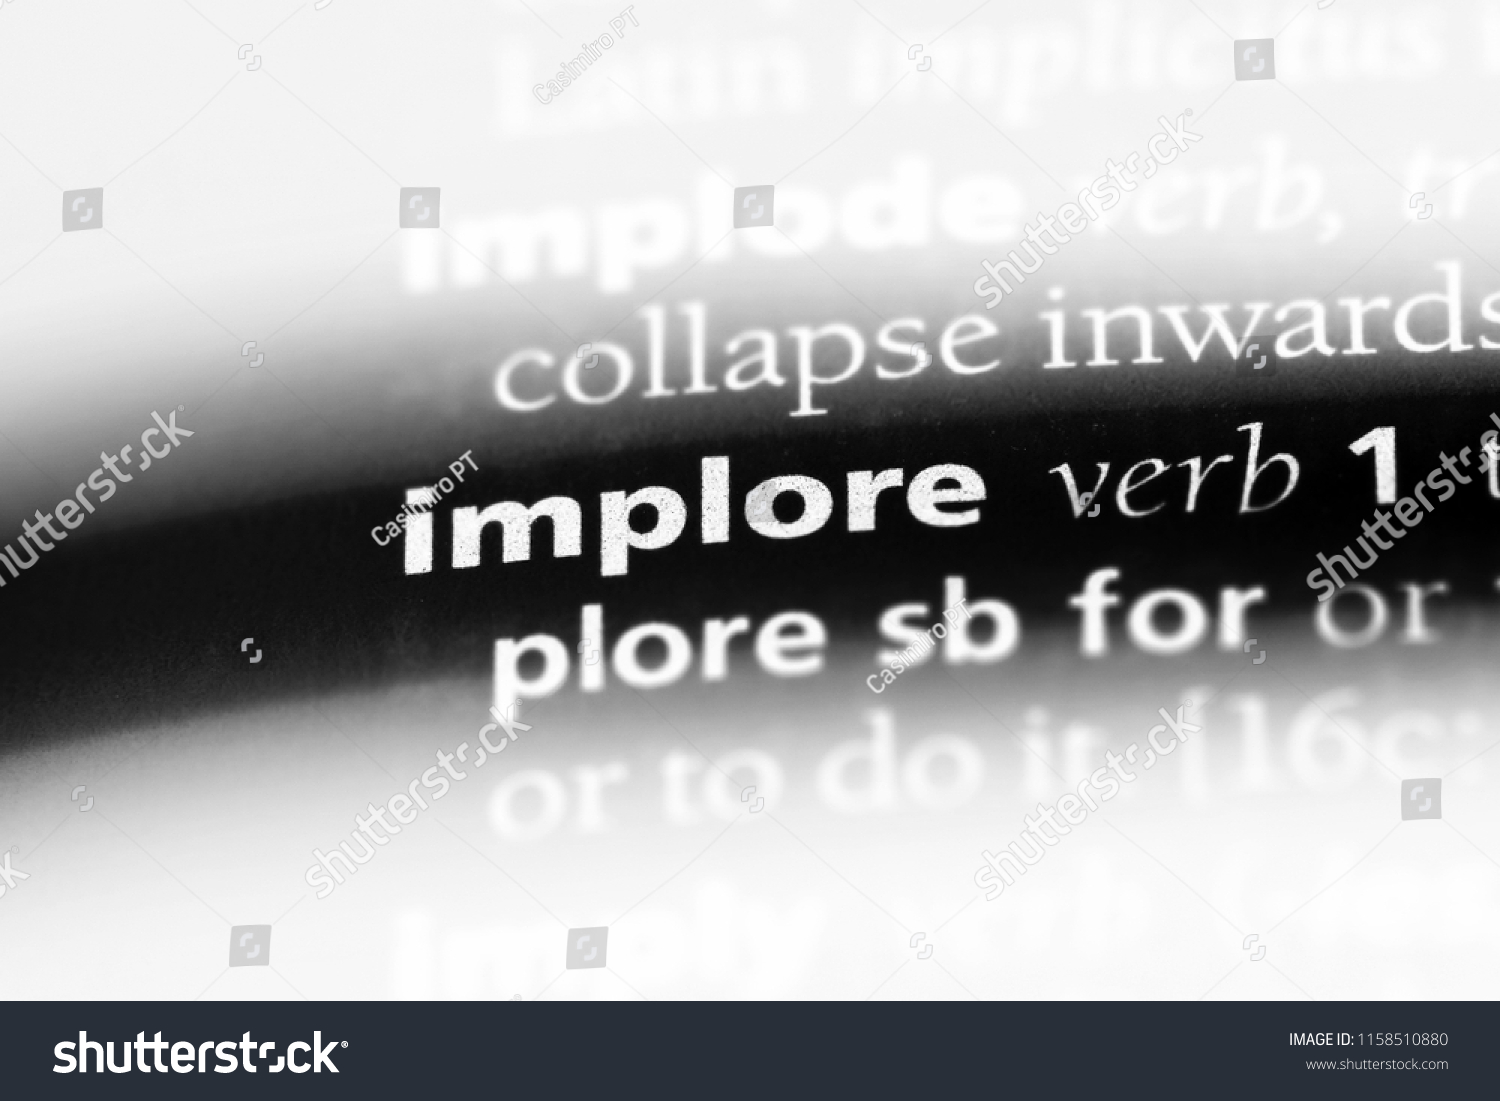 implore word dictionary implore concept stock photo (edit now